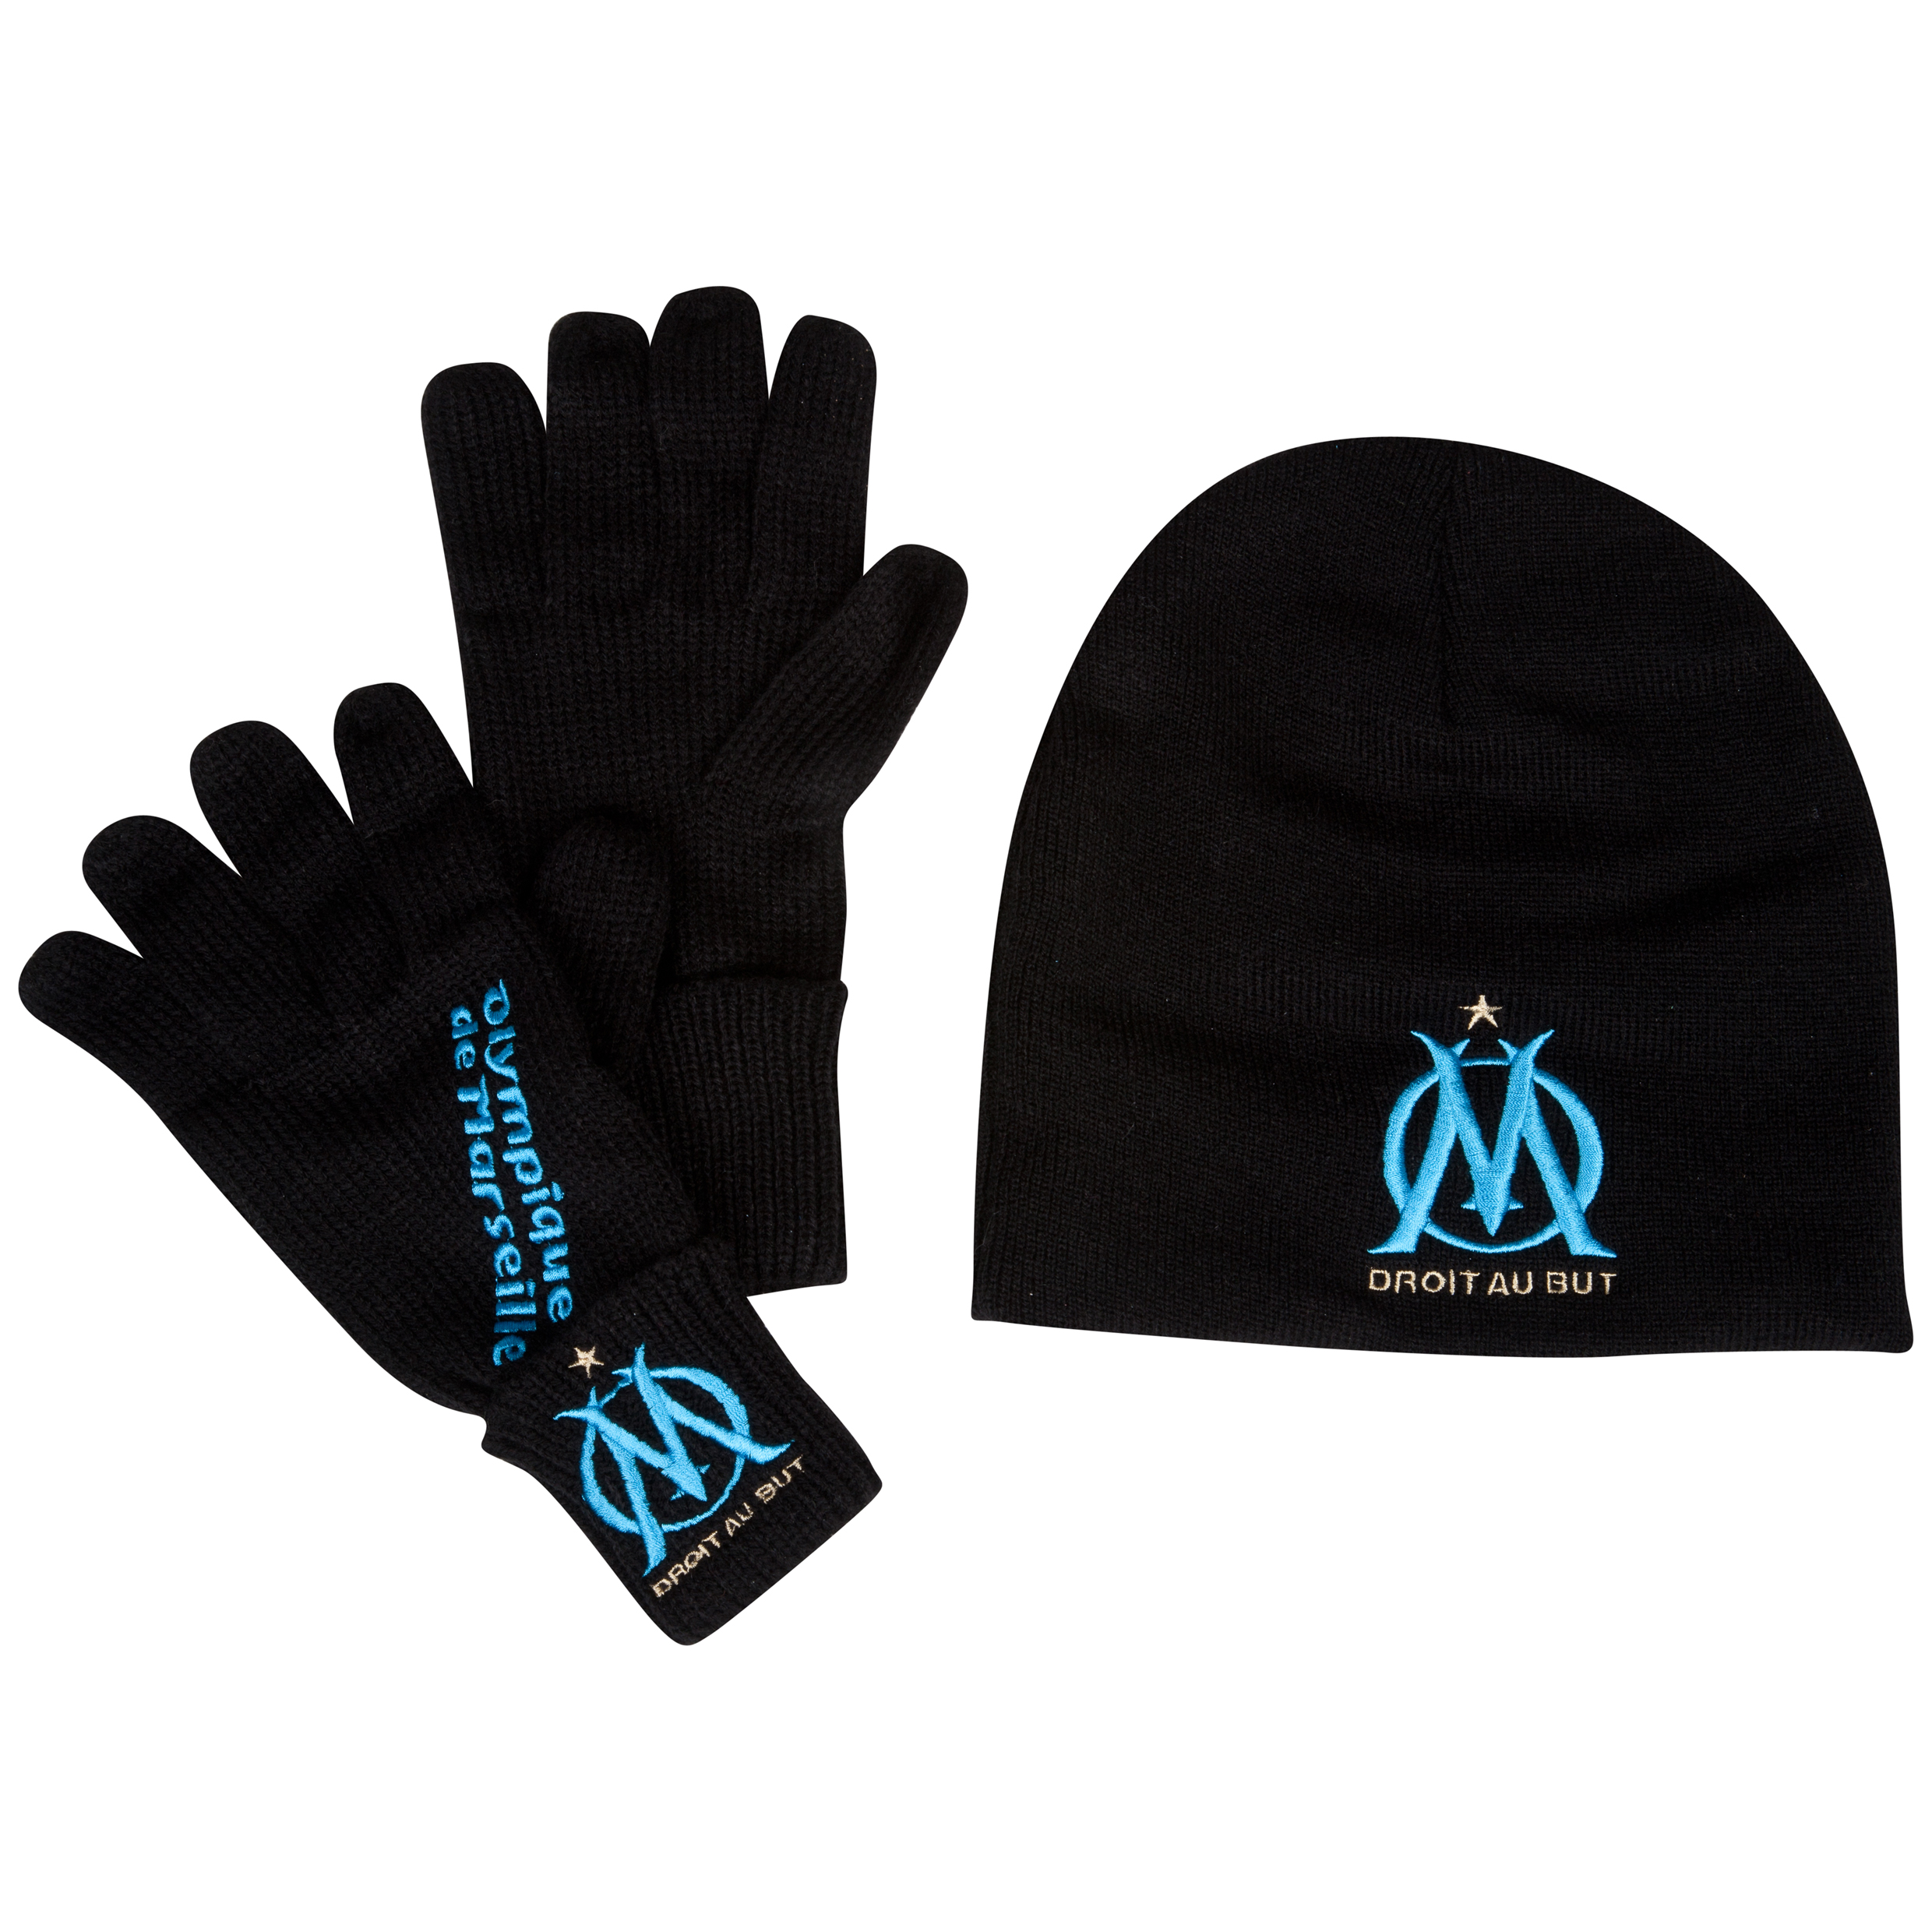 Olympique de Marseille Glove and Beanie Set - Blue